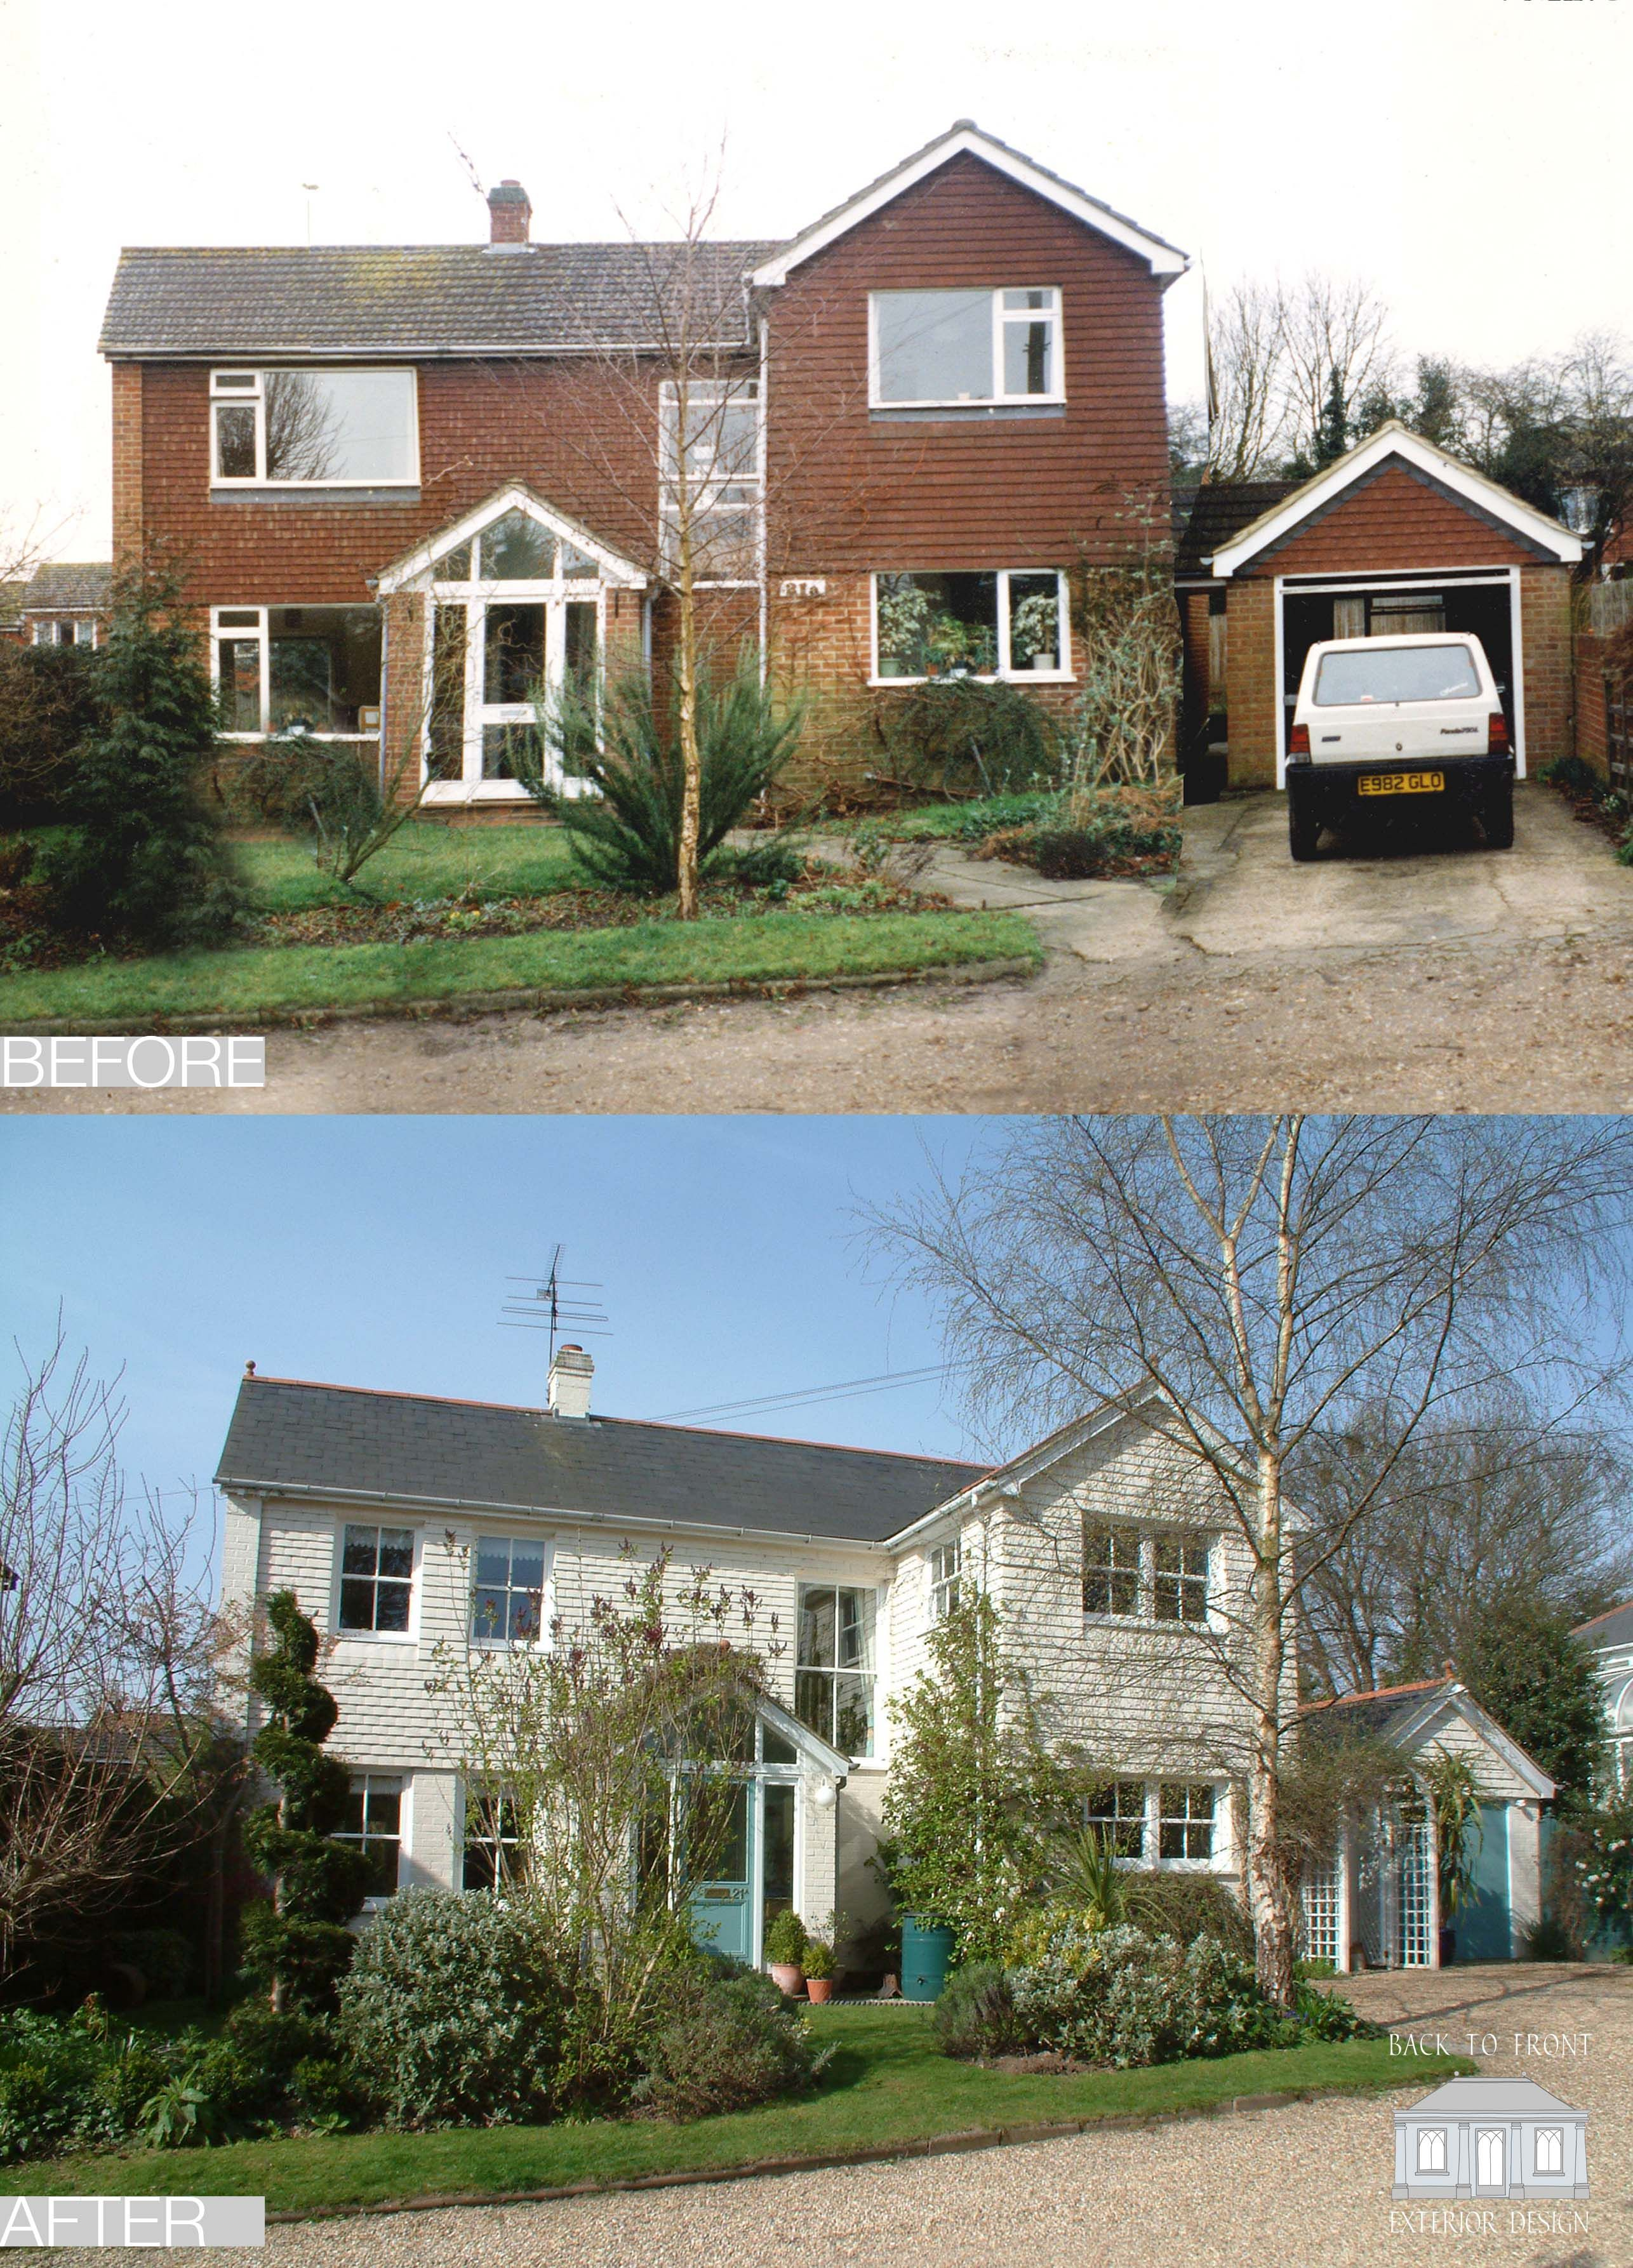 The first back to front project 1960 39 s before and after - Change the exterior of your house ...